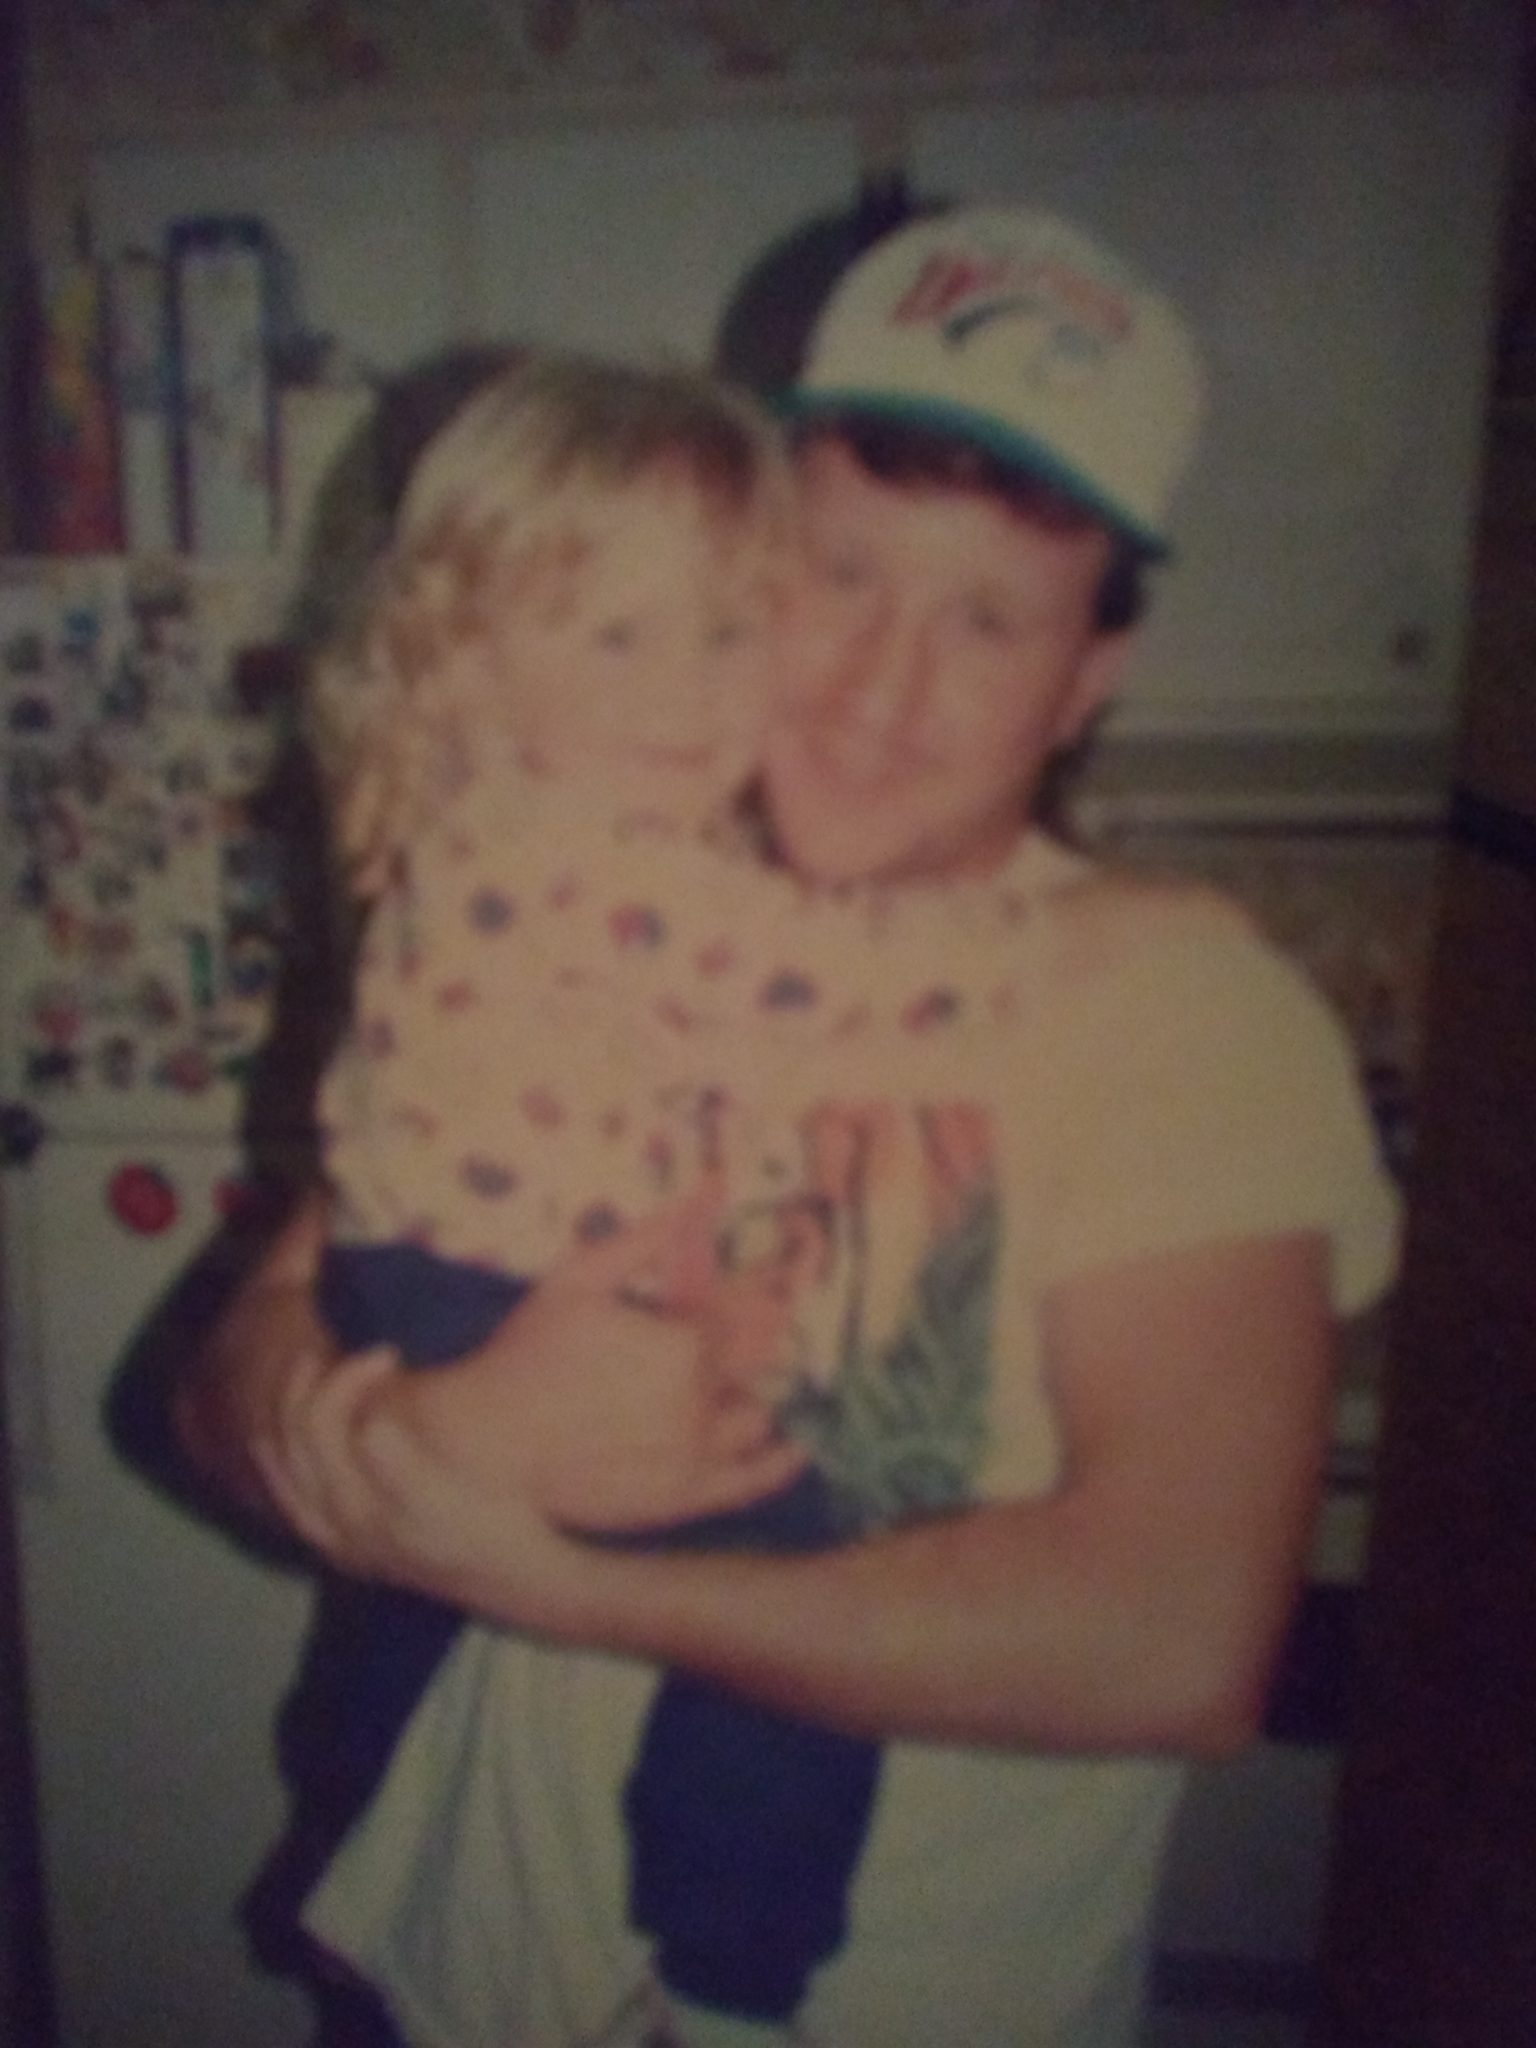 Ricky and Courtney . He loved his baby girl